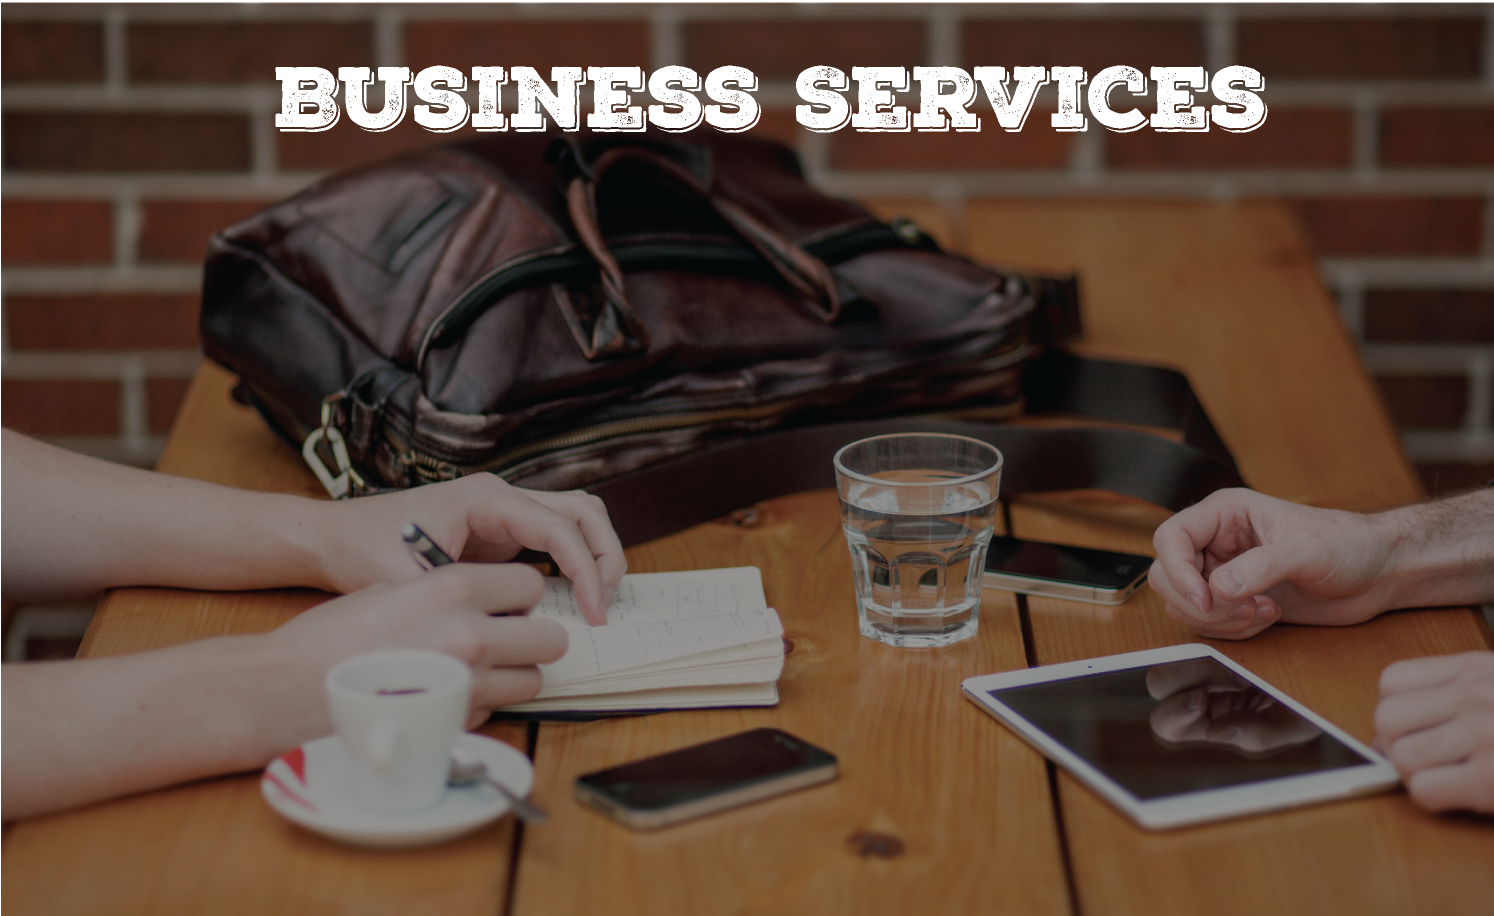 Small Business Services in San Diego, CA